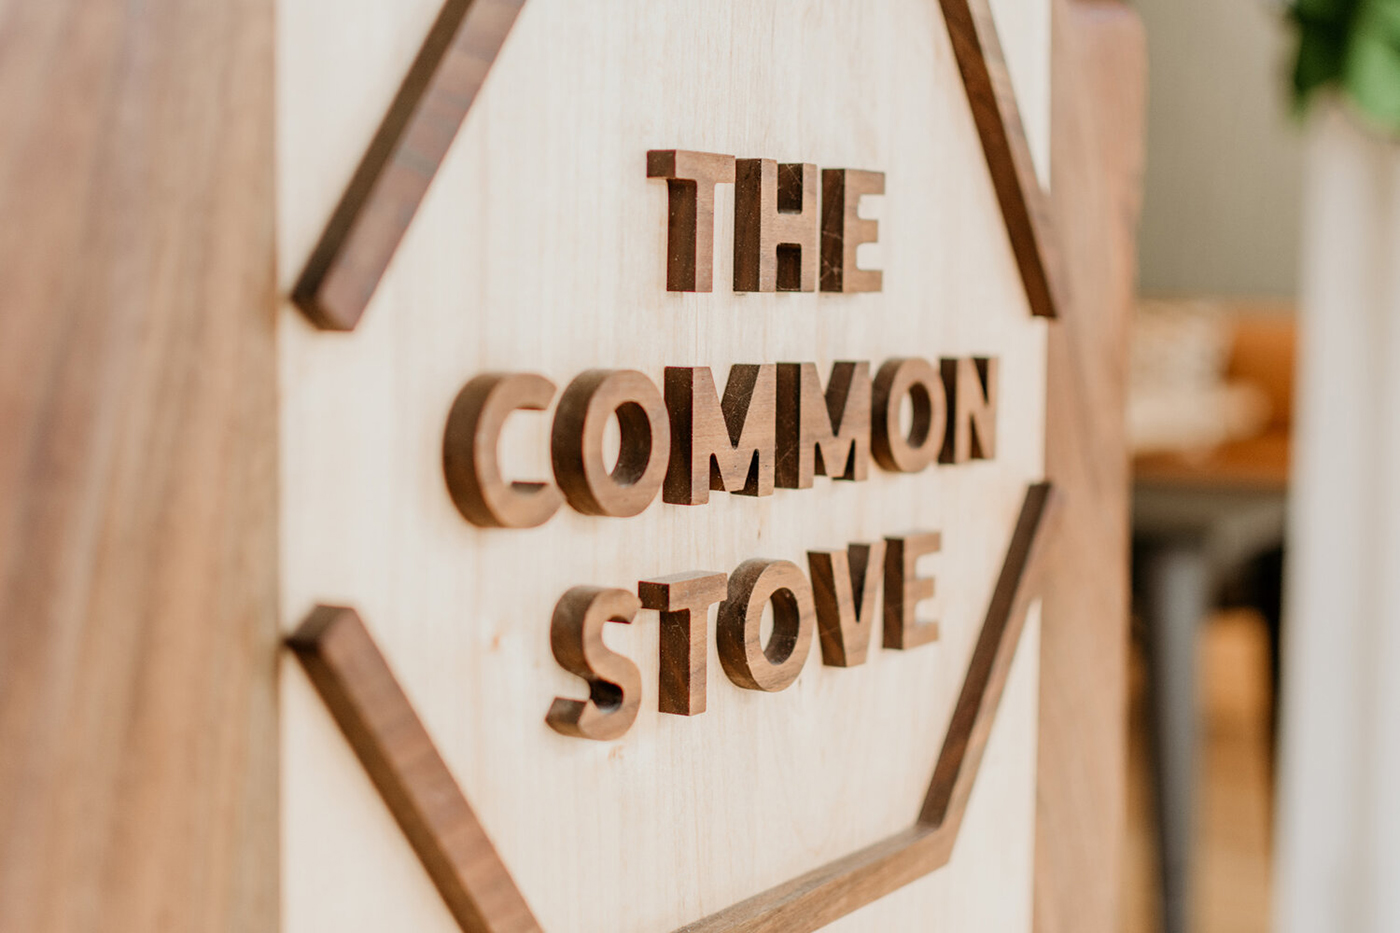 The Common Stove logo